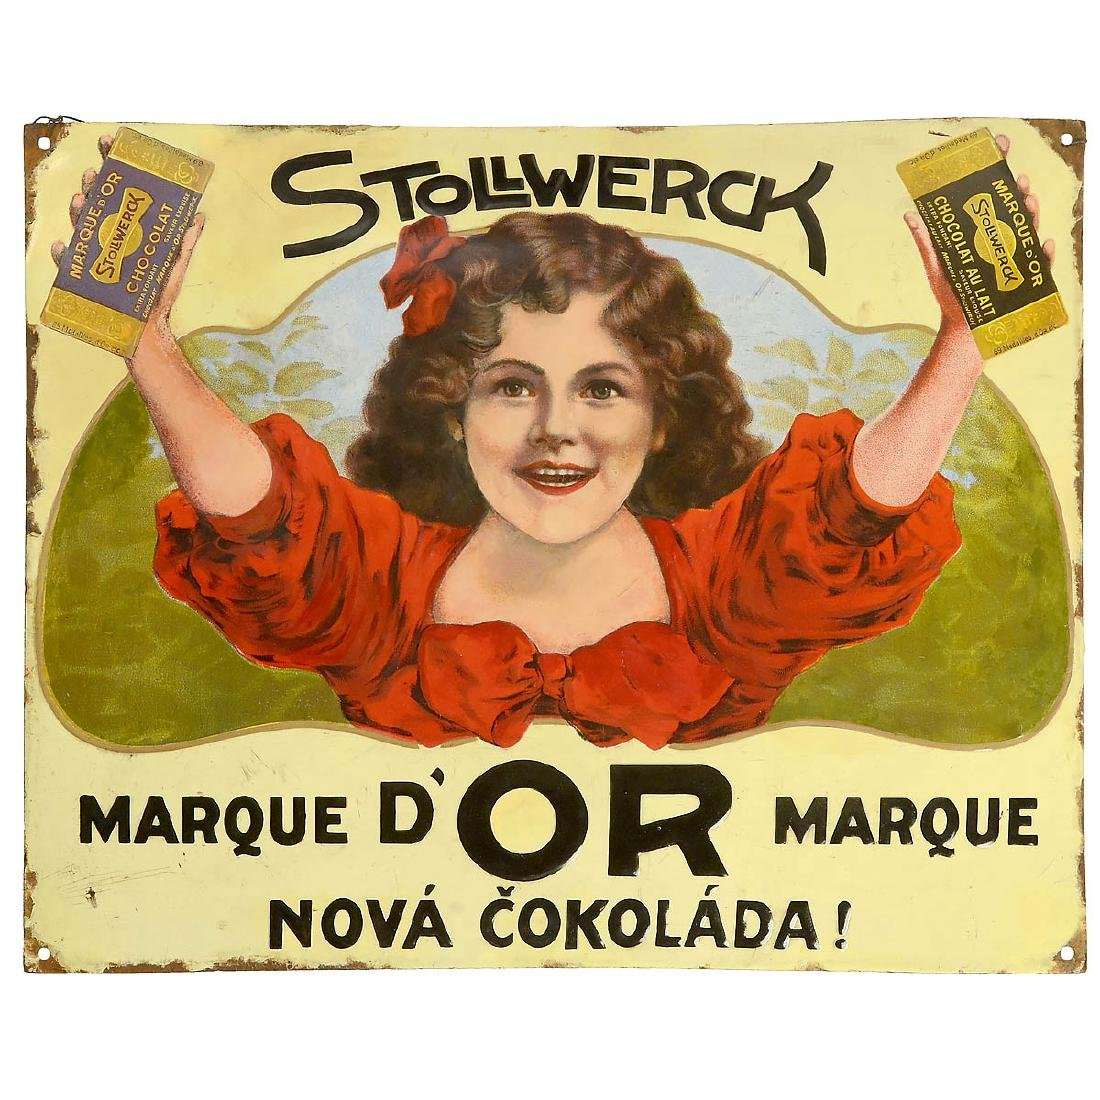 Stollwerk Enamel Advertising Sign, c. 1914